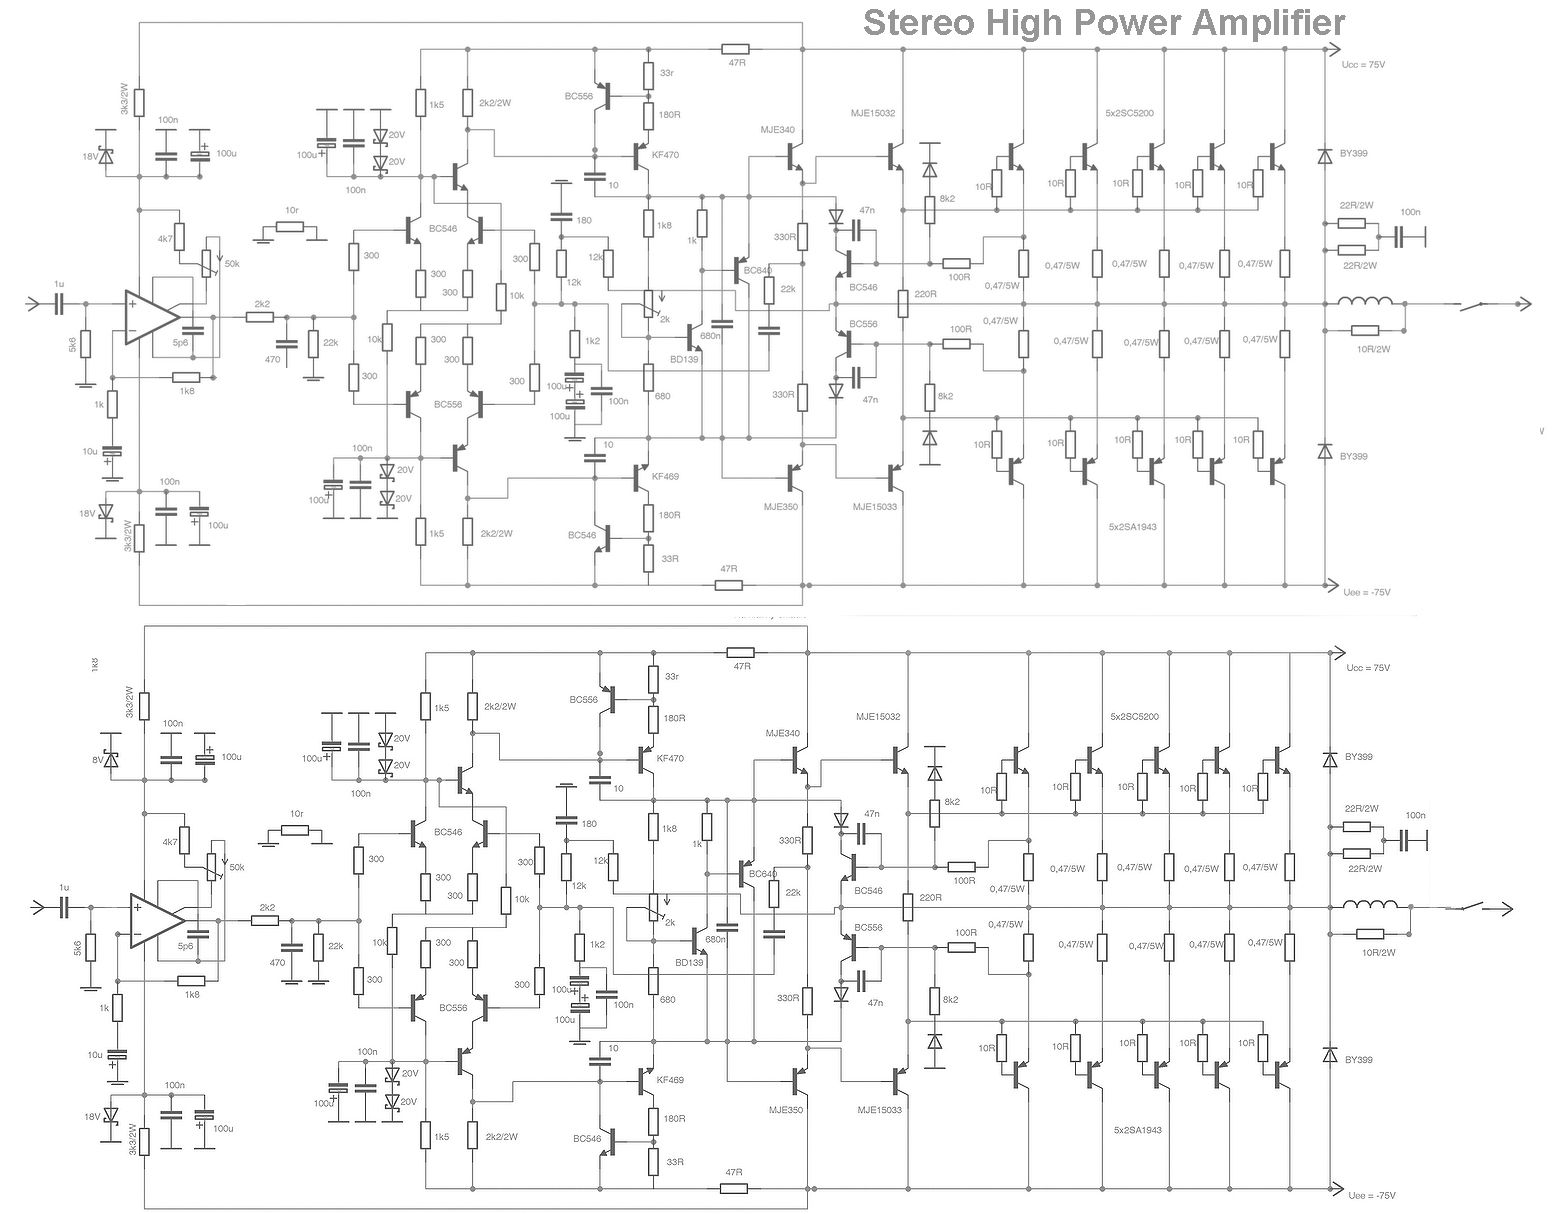 Lm386 Audio Amplifier Circuit Universal Line Audio Amplifier Tda2030